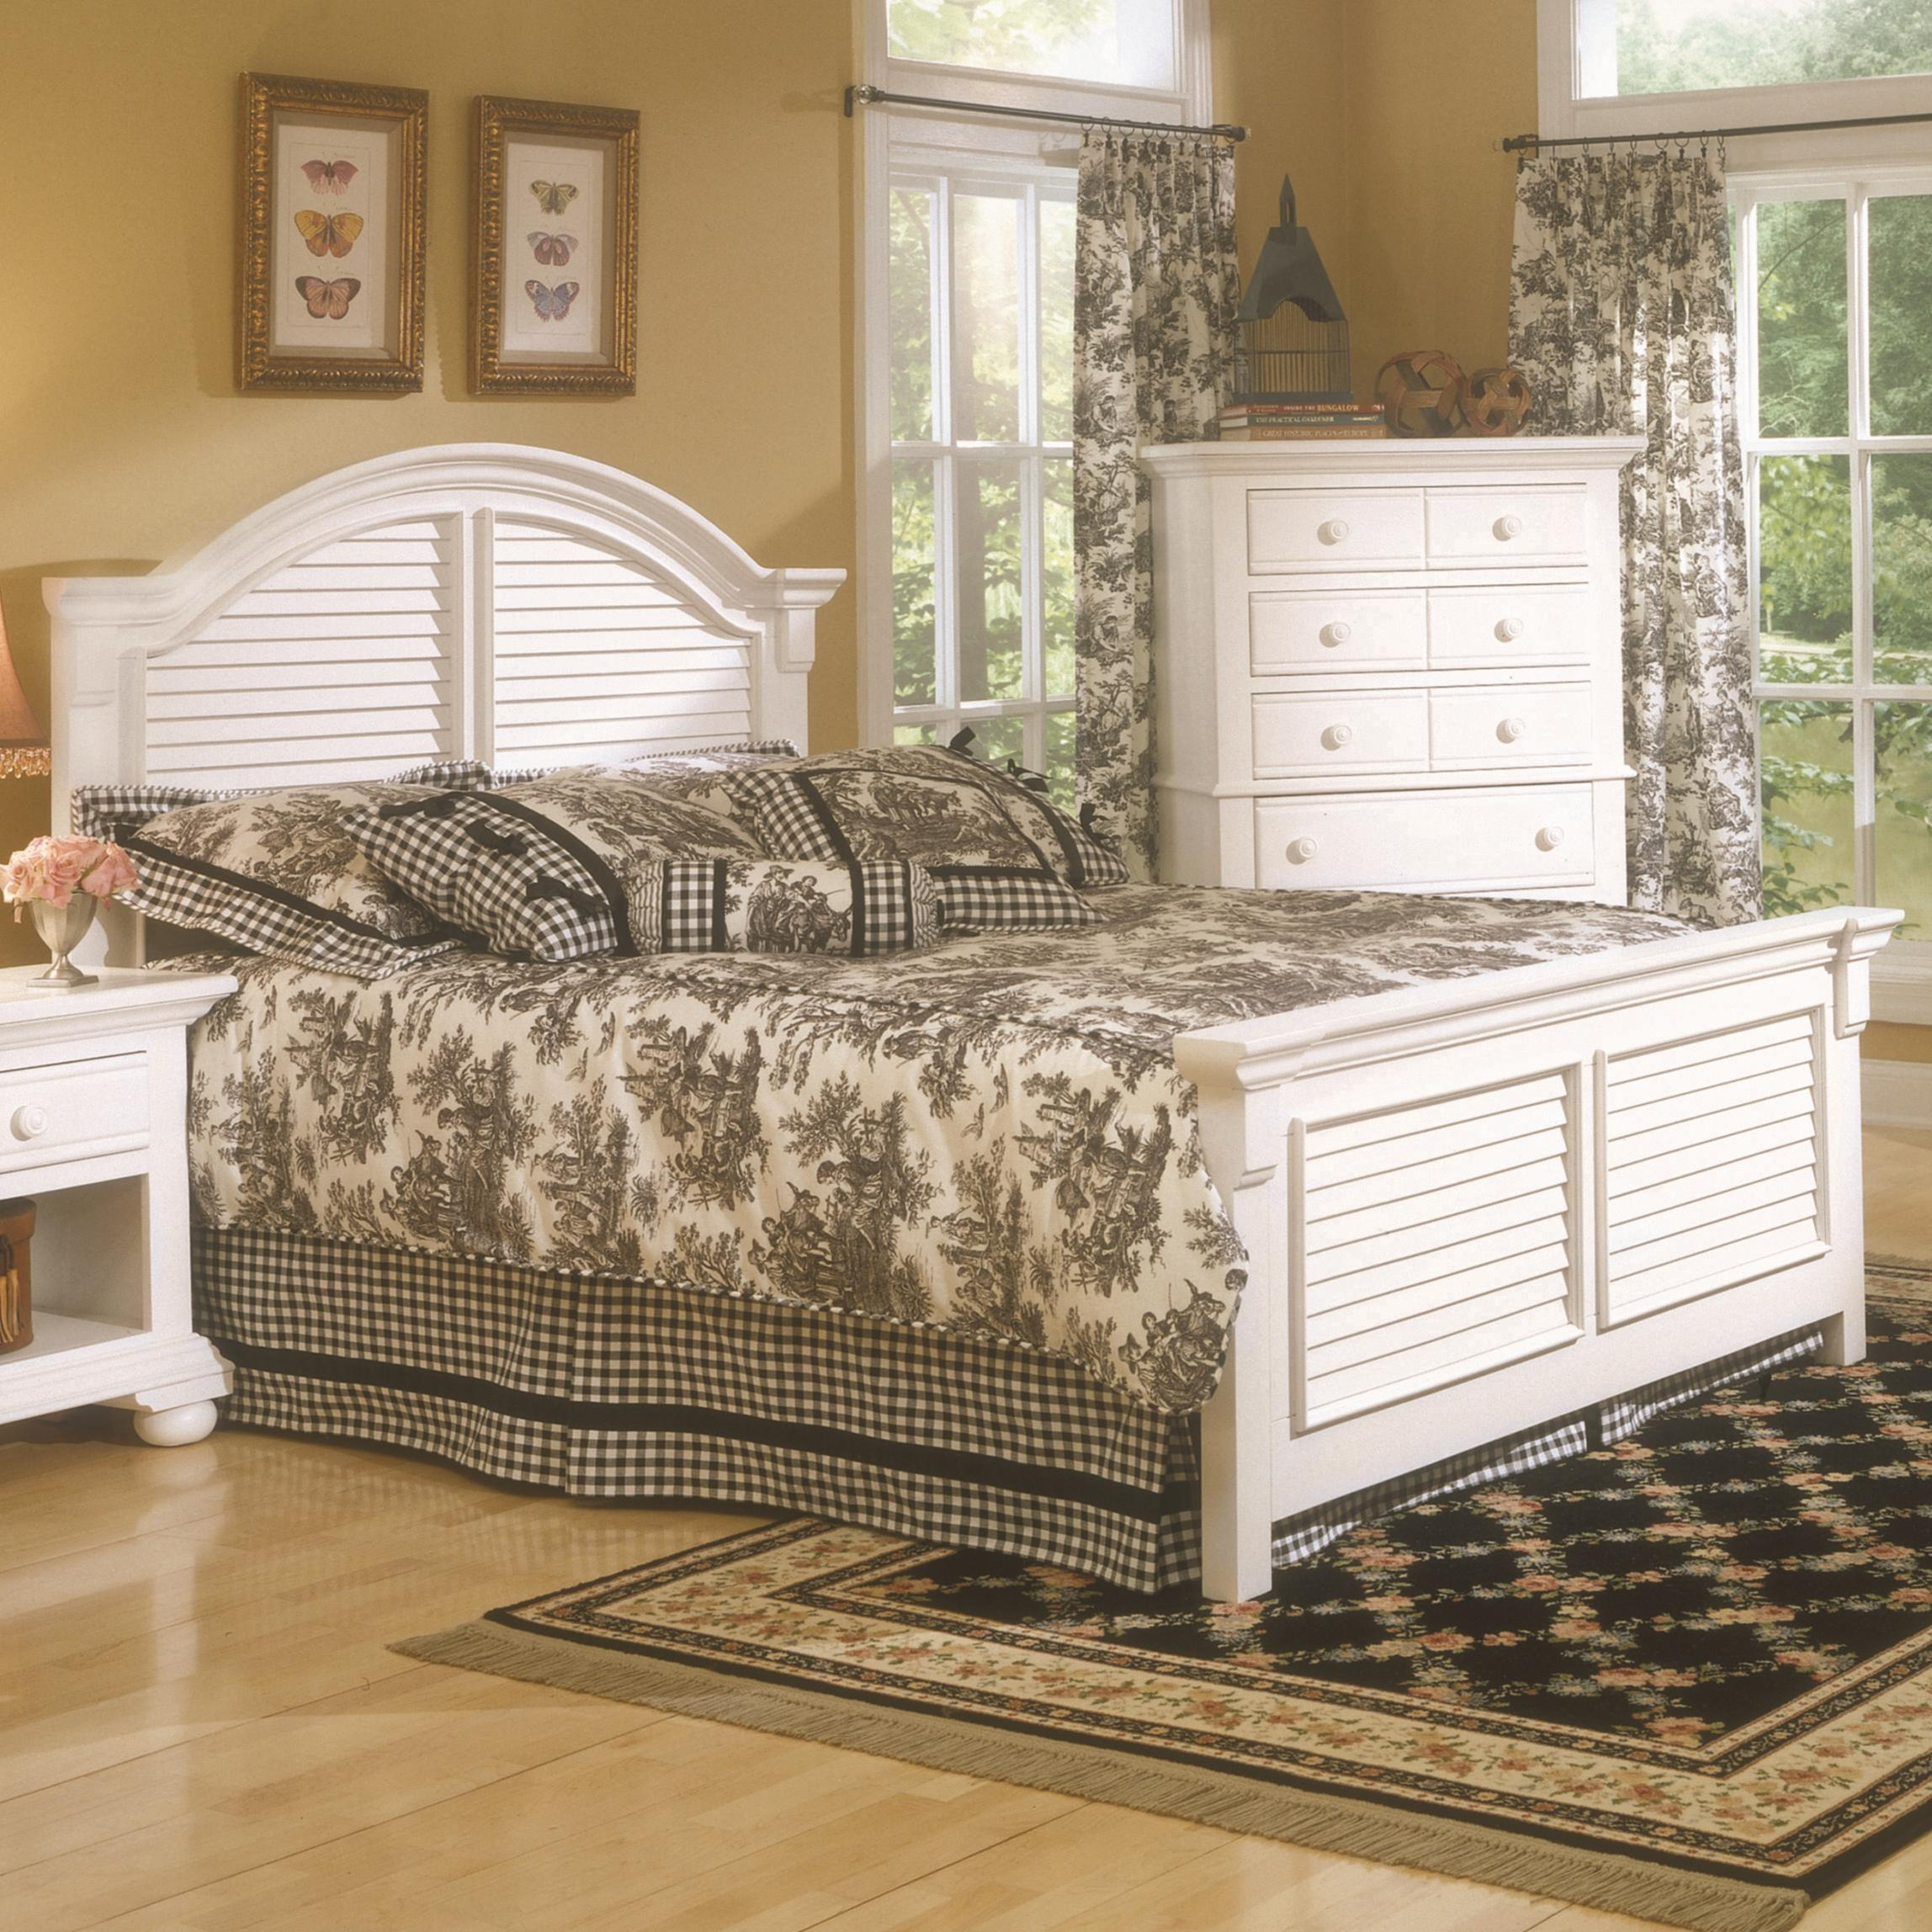 American Woodcrafters Cottage Traditions King Panel Bed - Item Number: 6510-66PAN